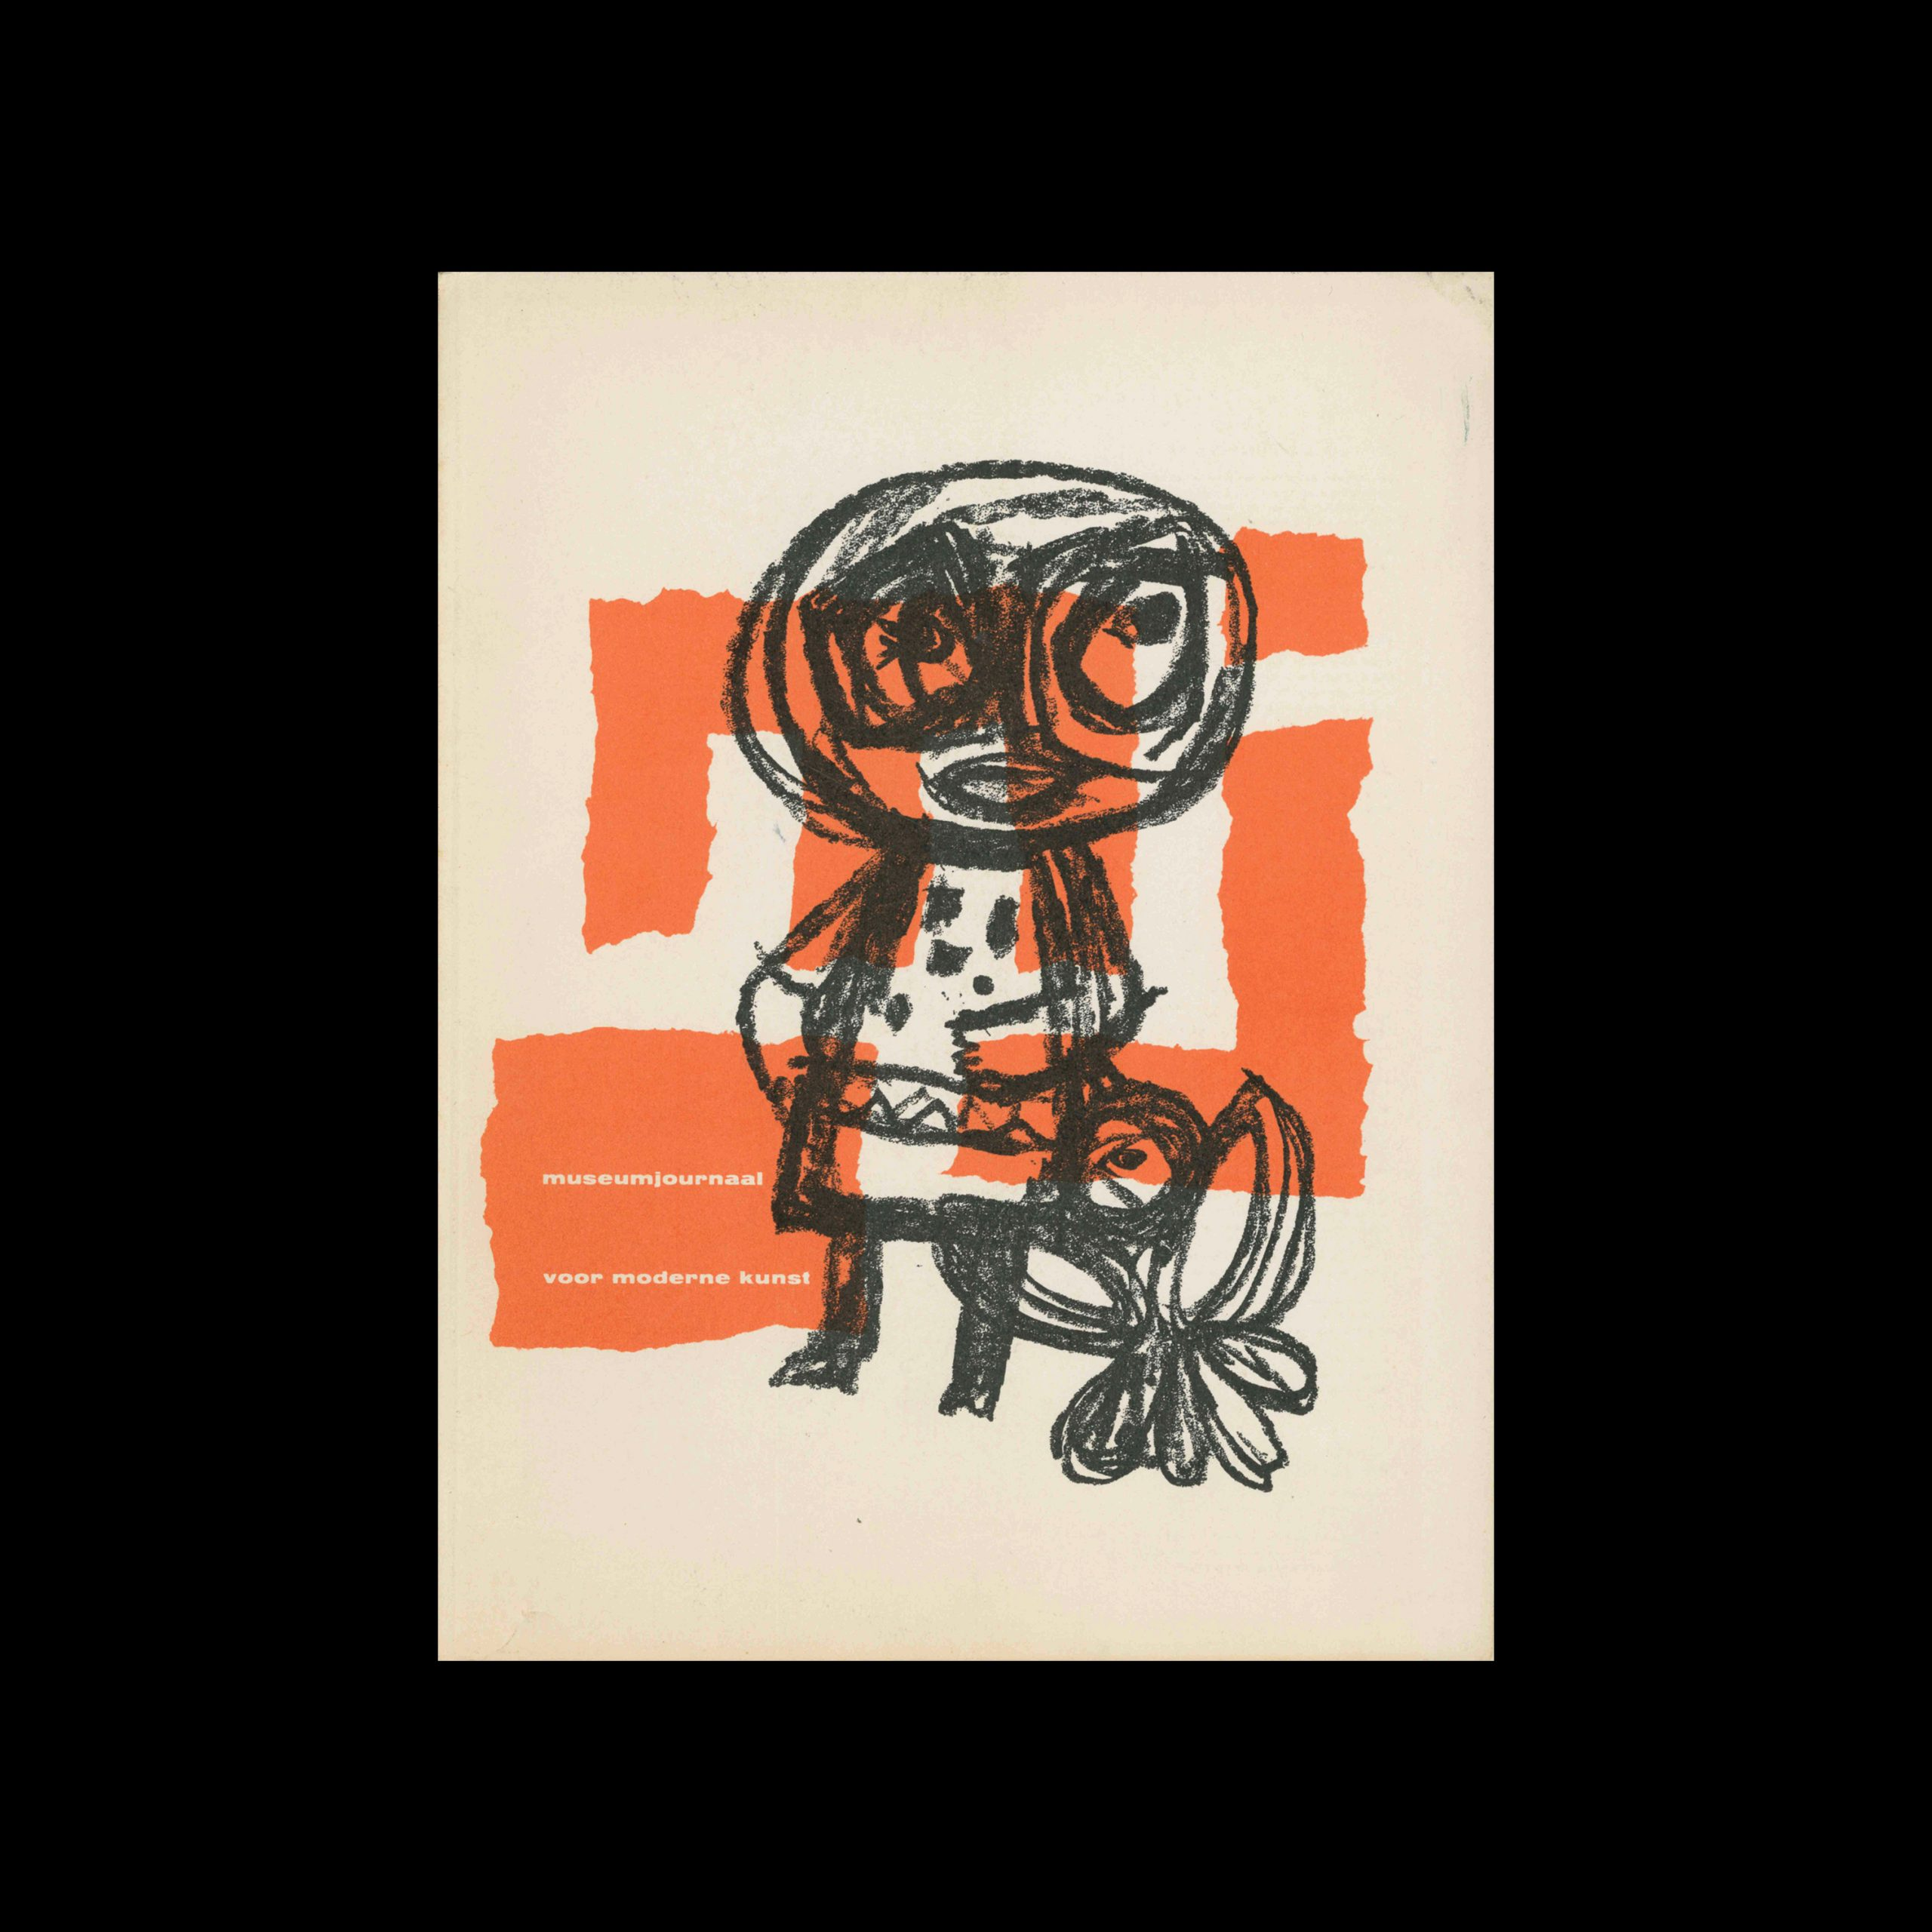 Museumjournaal, Serie 9 no7, 1963. Cover illustration by Gerrit Benner.